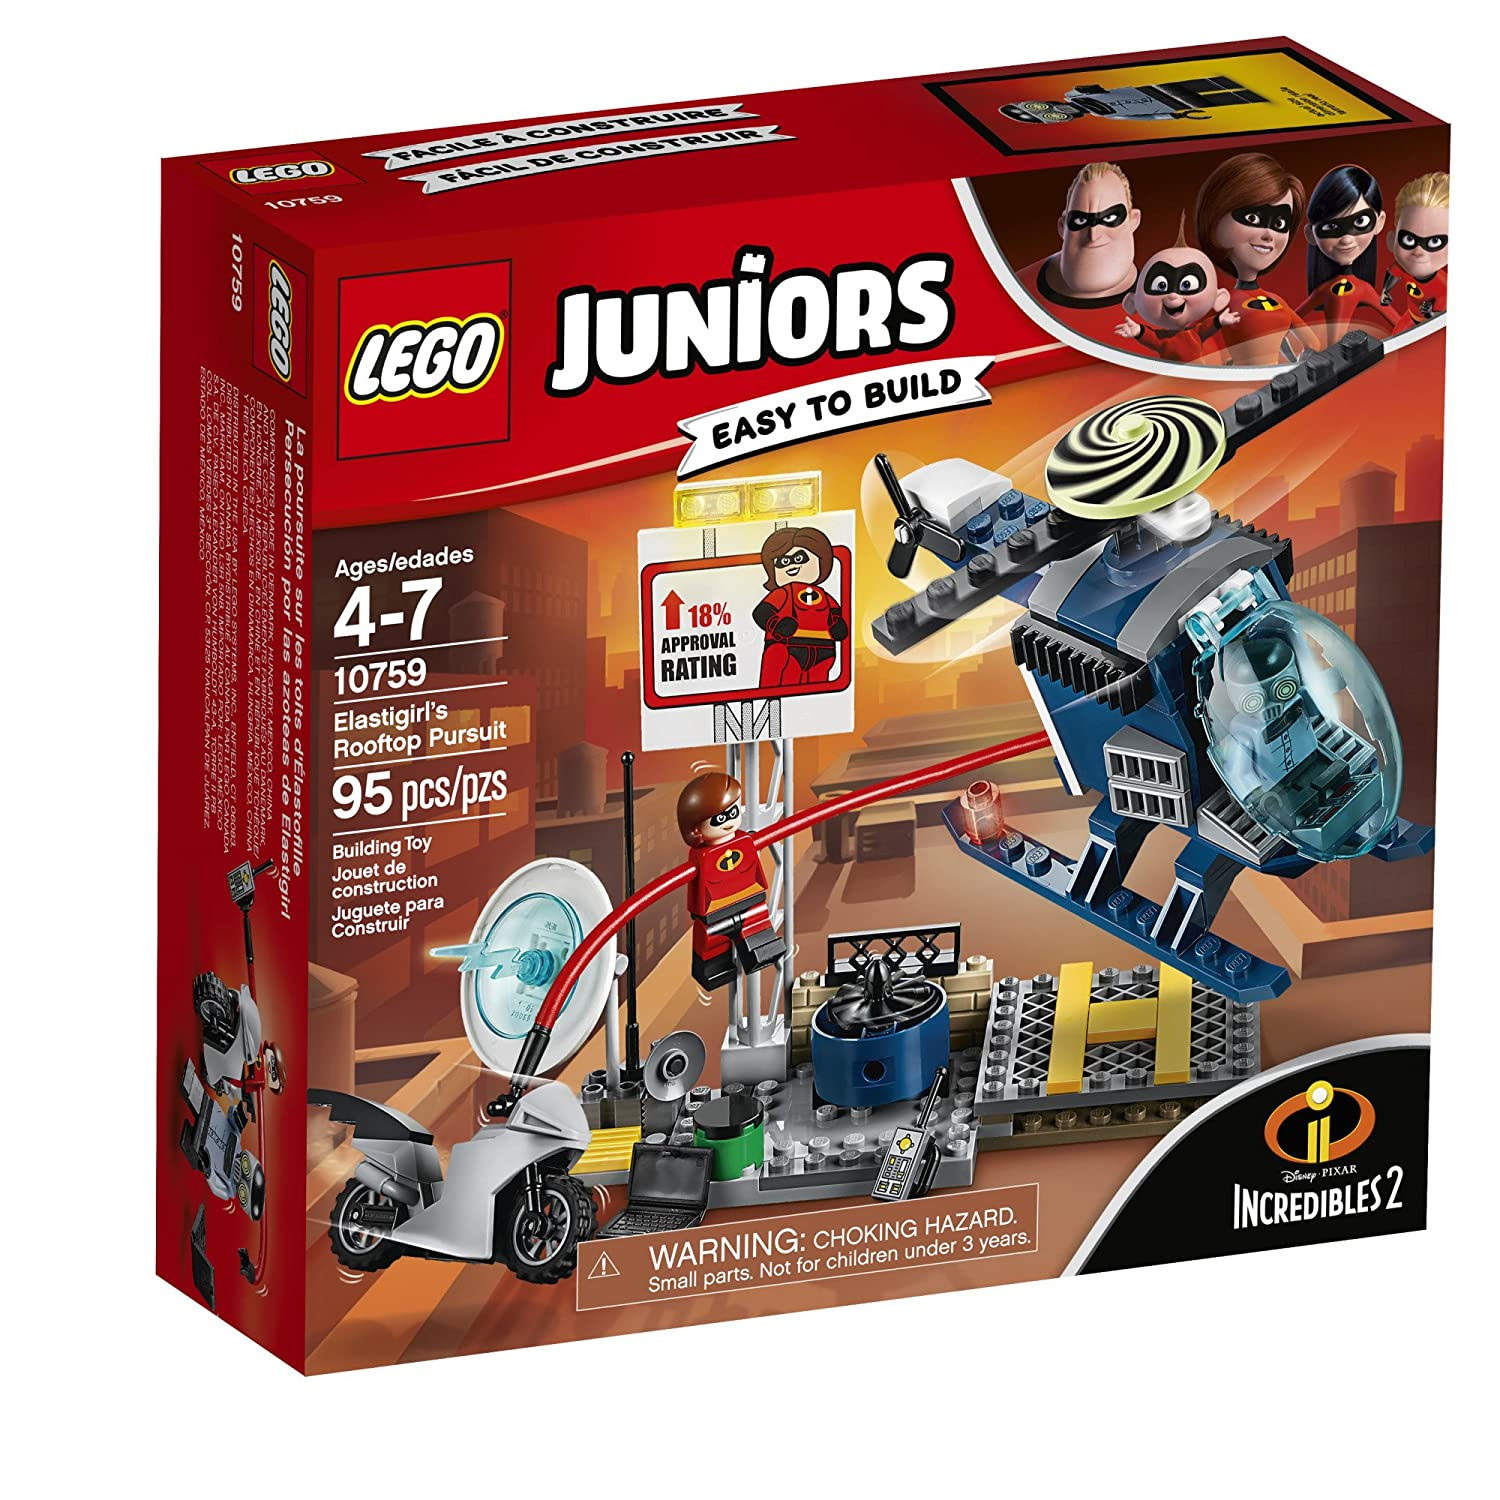 helicopter in minecraft with Lego Juniors The Incredibles 2 Sets Available On Amazon on He162mm in addition Minecraft Airplane Tutorial besides Iron Man Mansion Es Vedra also Lego Juniors The Incredibles 2 Sets Available On Amazon besides MV Princess of the Stars.